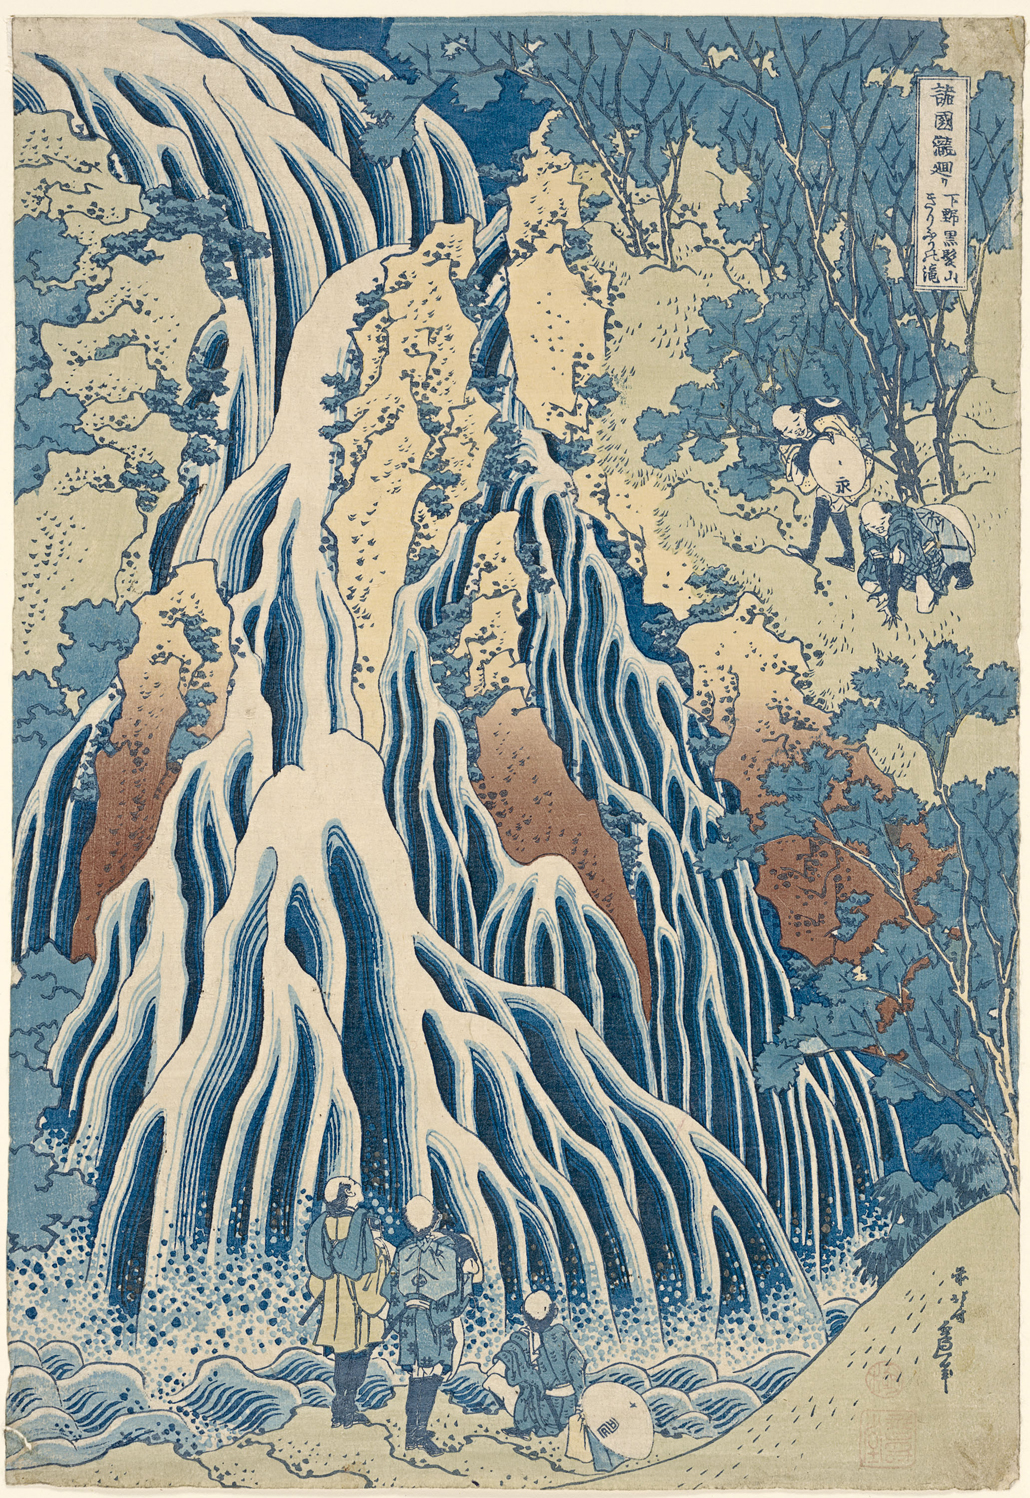 Misty Kirifuri Waterfall at Kurokami Mountain by Katsushika Hokusai